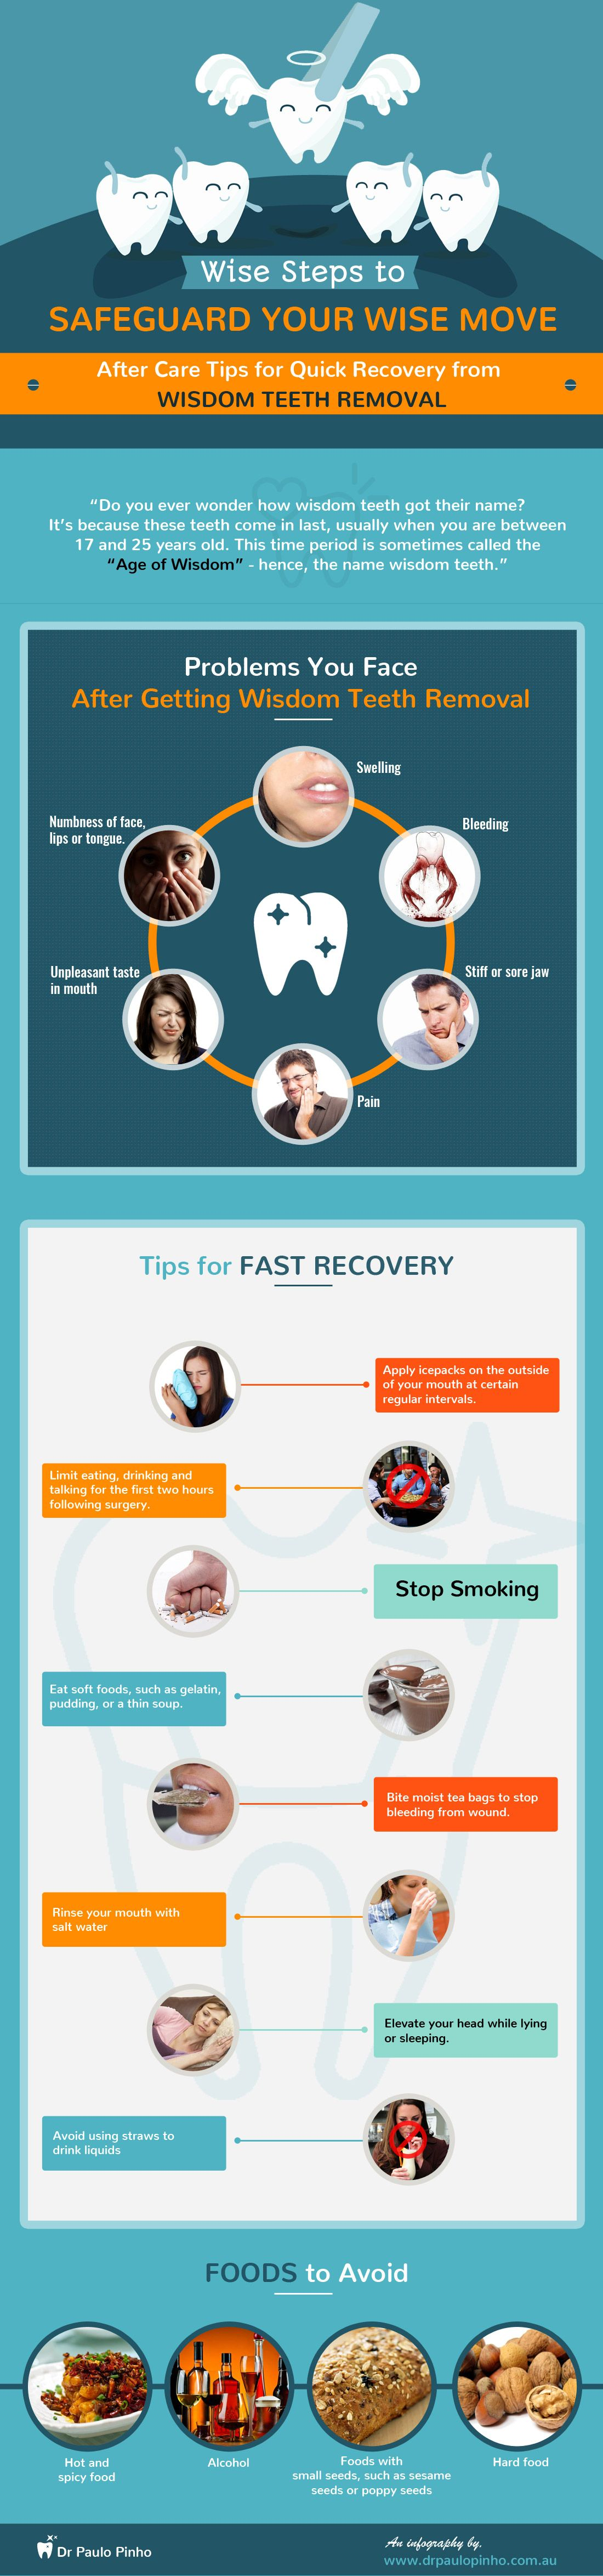 Aftercare Tips For Quick Recovery From Wisdom Teeth Removal This Infography Brought To You By Wisdom Teeth Removal After Wisdom Teeth Removal Tooth Removal